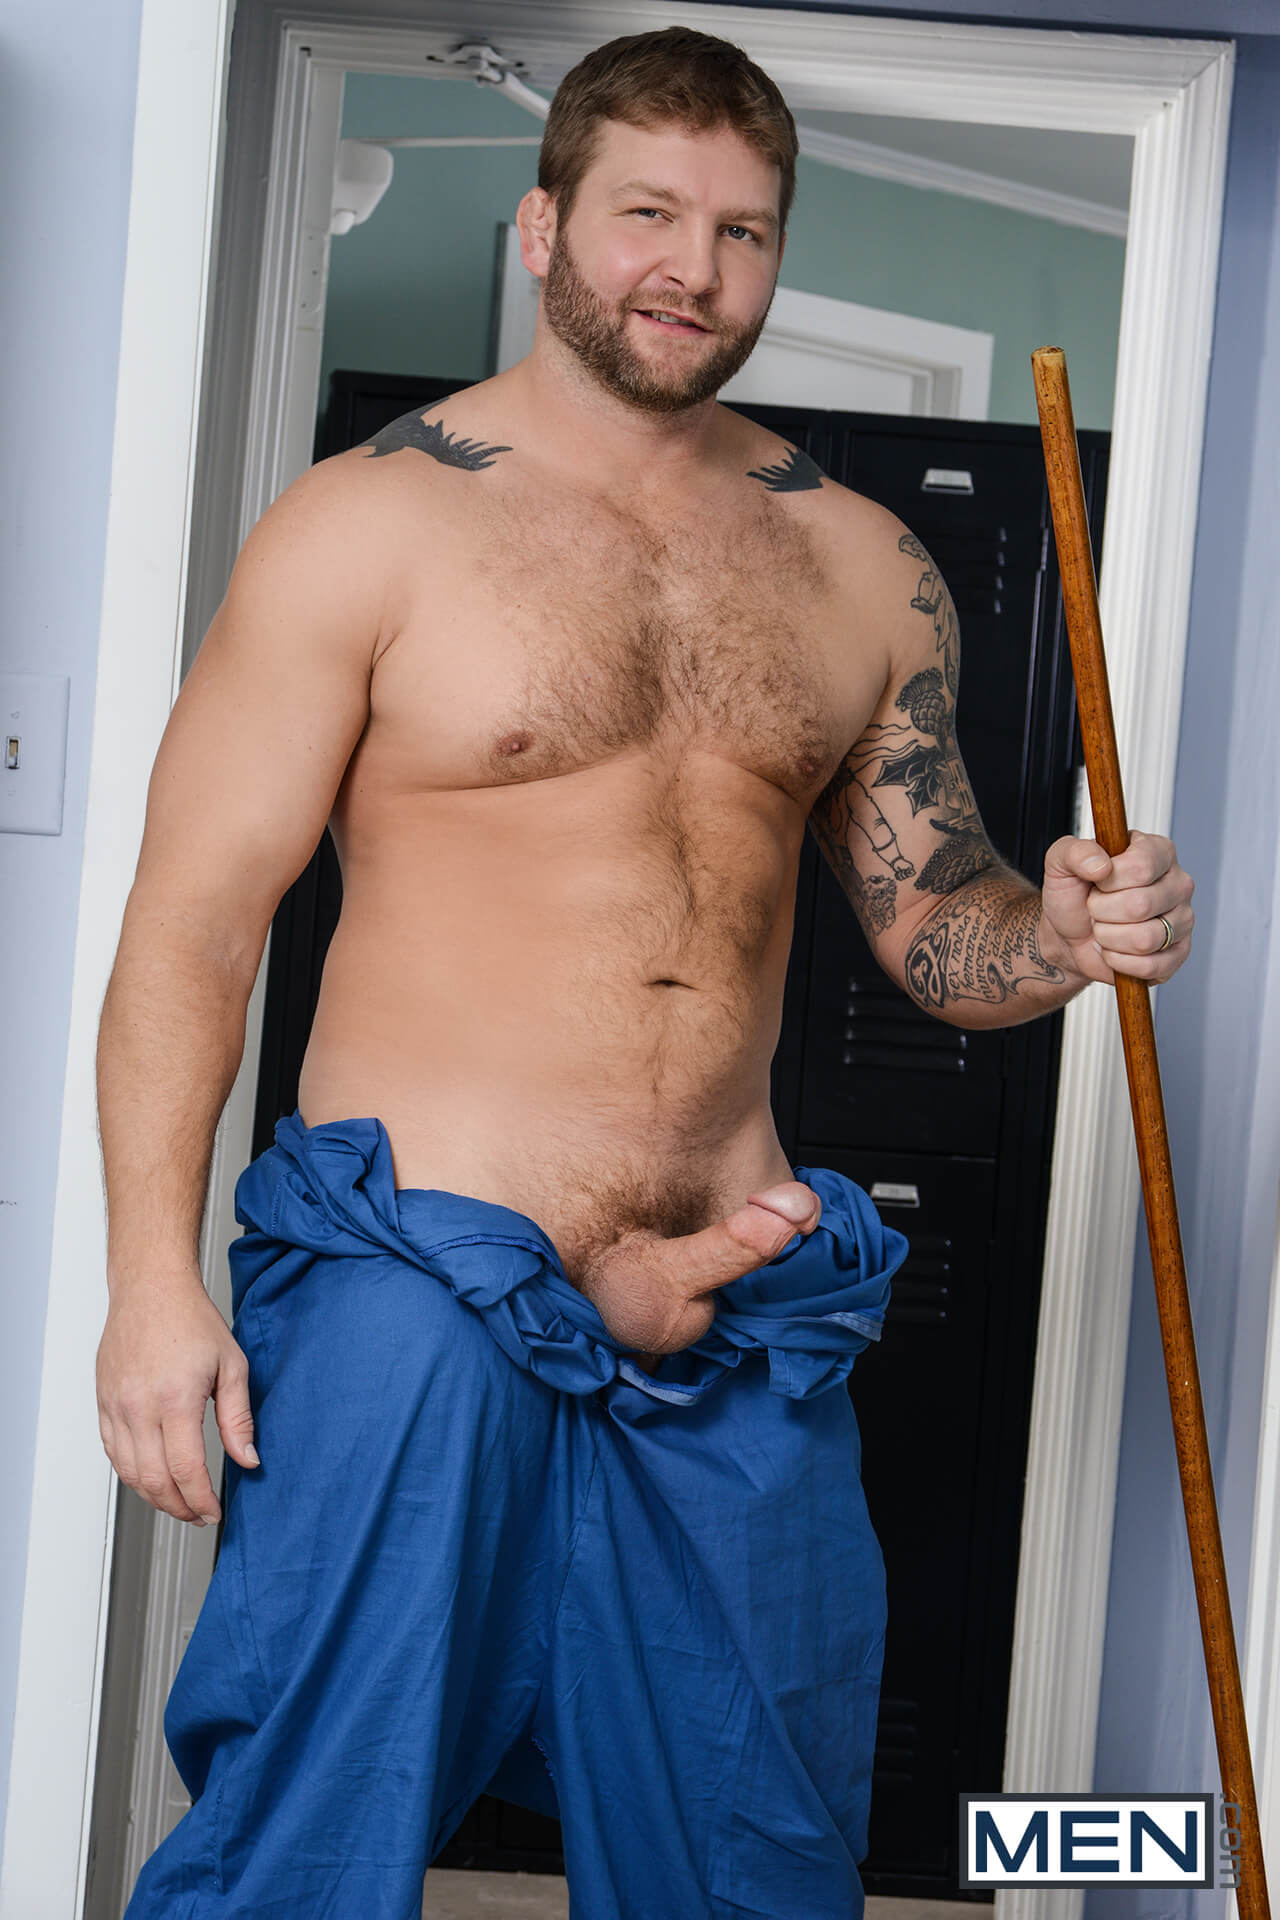 men big dicks at school janitors closet part 3 colby jansen darin silvers gay porn blog image 6